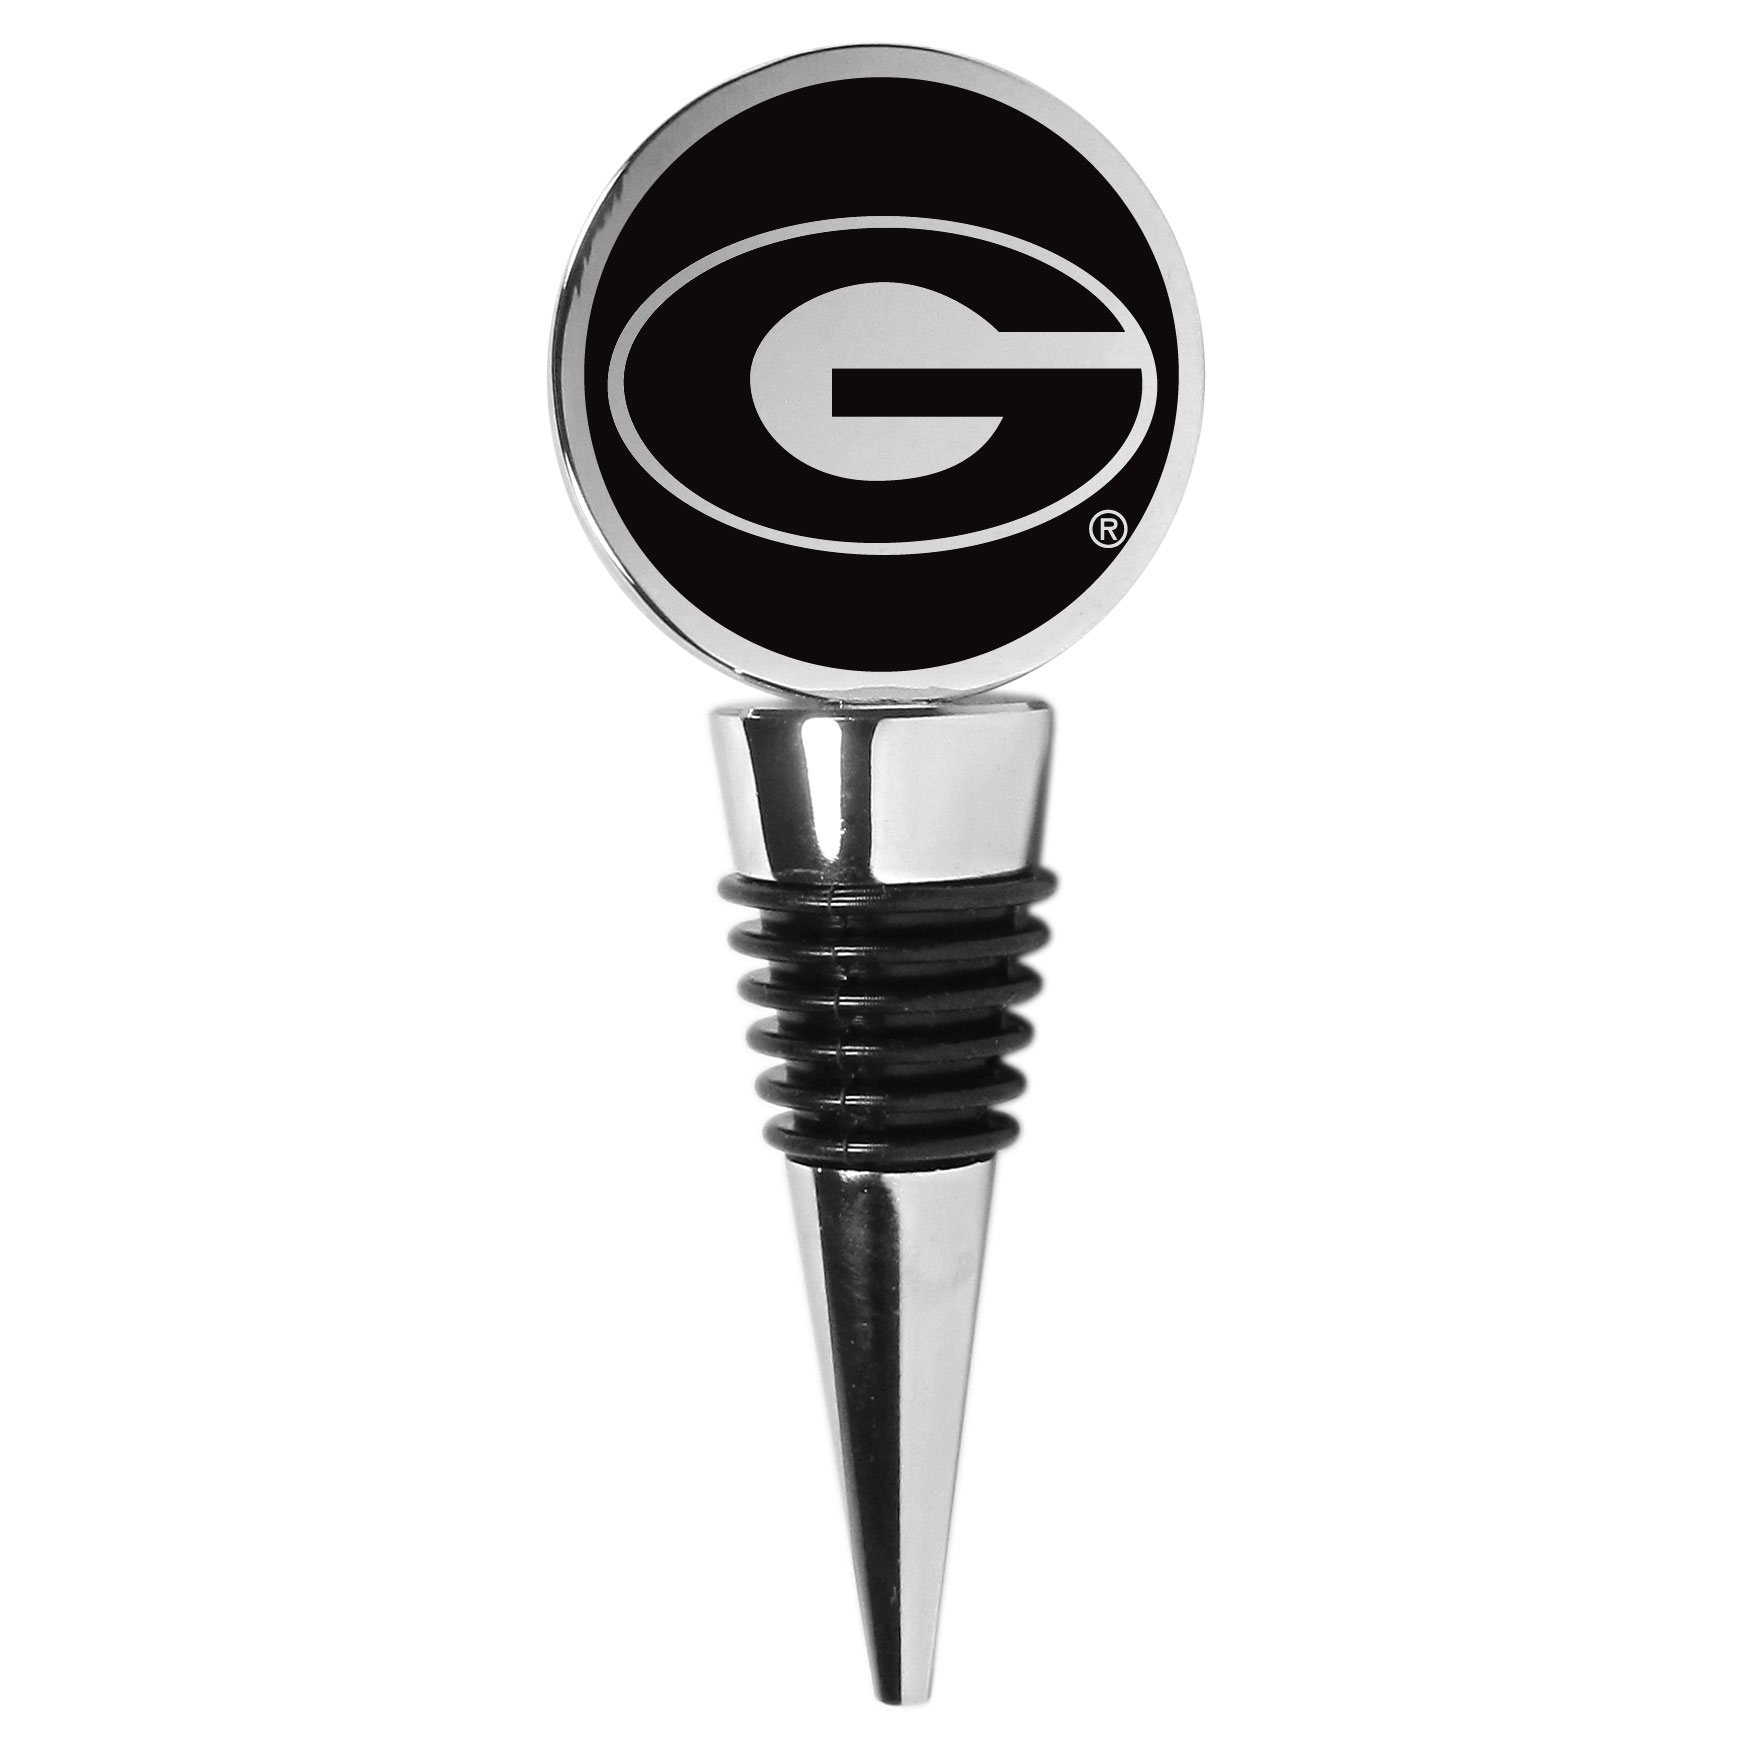 Georgia Bulldogs Wine Stopper - This beautiful Georgia Bulldogs wine stopper has a classy monochromatic logo on the top disc. The tapered rubber rings allow you to create a tight seal on multiple sizes of wine bottles so that you are able to preserve the wine for later enjoyment. This a perfect addition to a game day celebration.